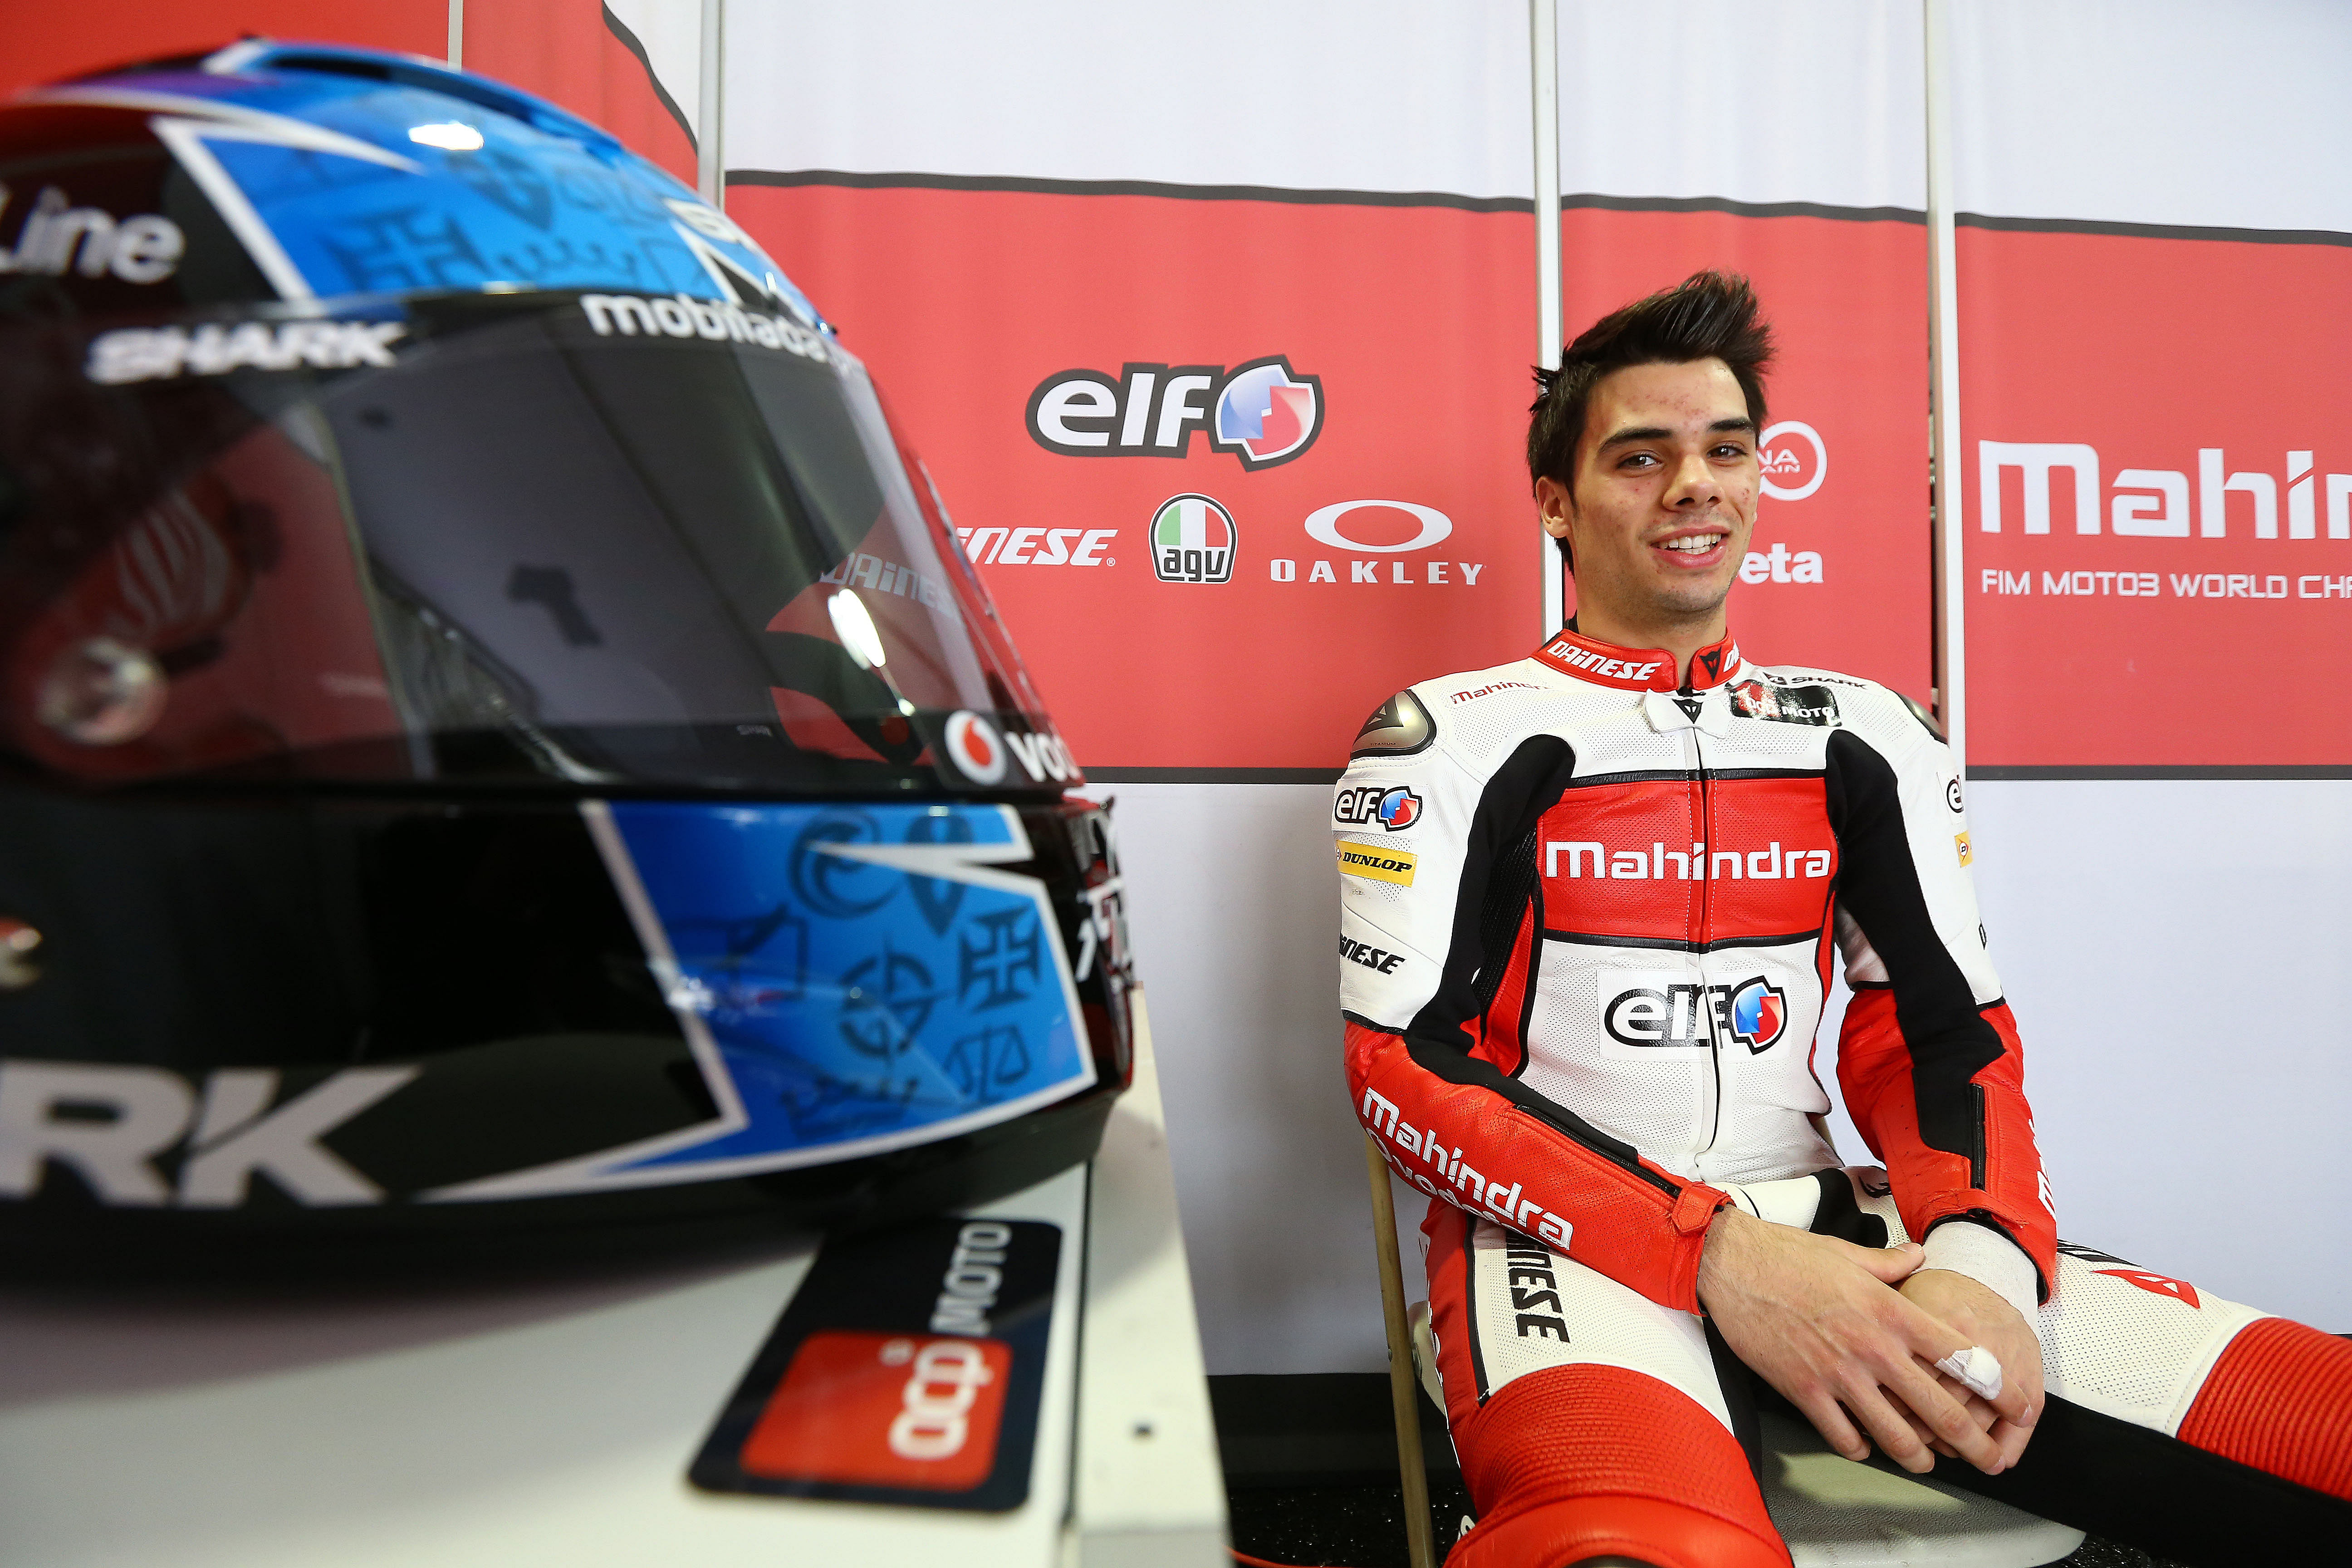 Mahindra Racing's Miguel Oliveira misses podium, finishes 4th